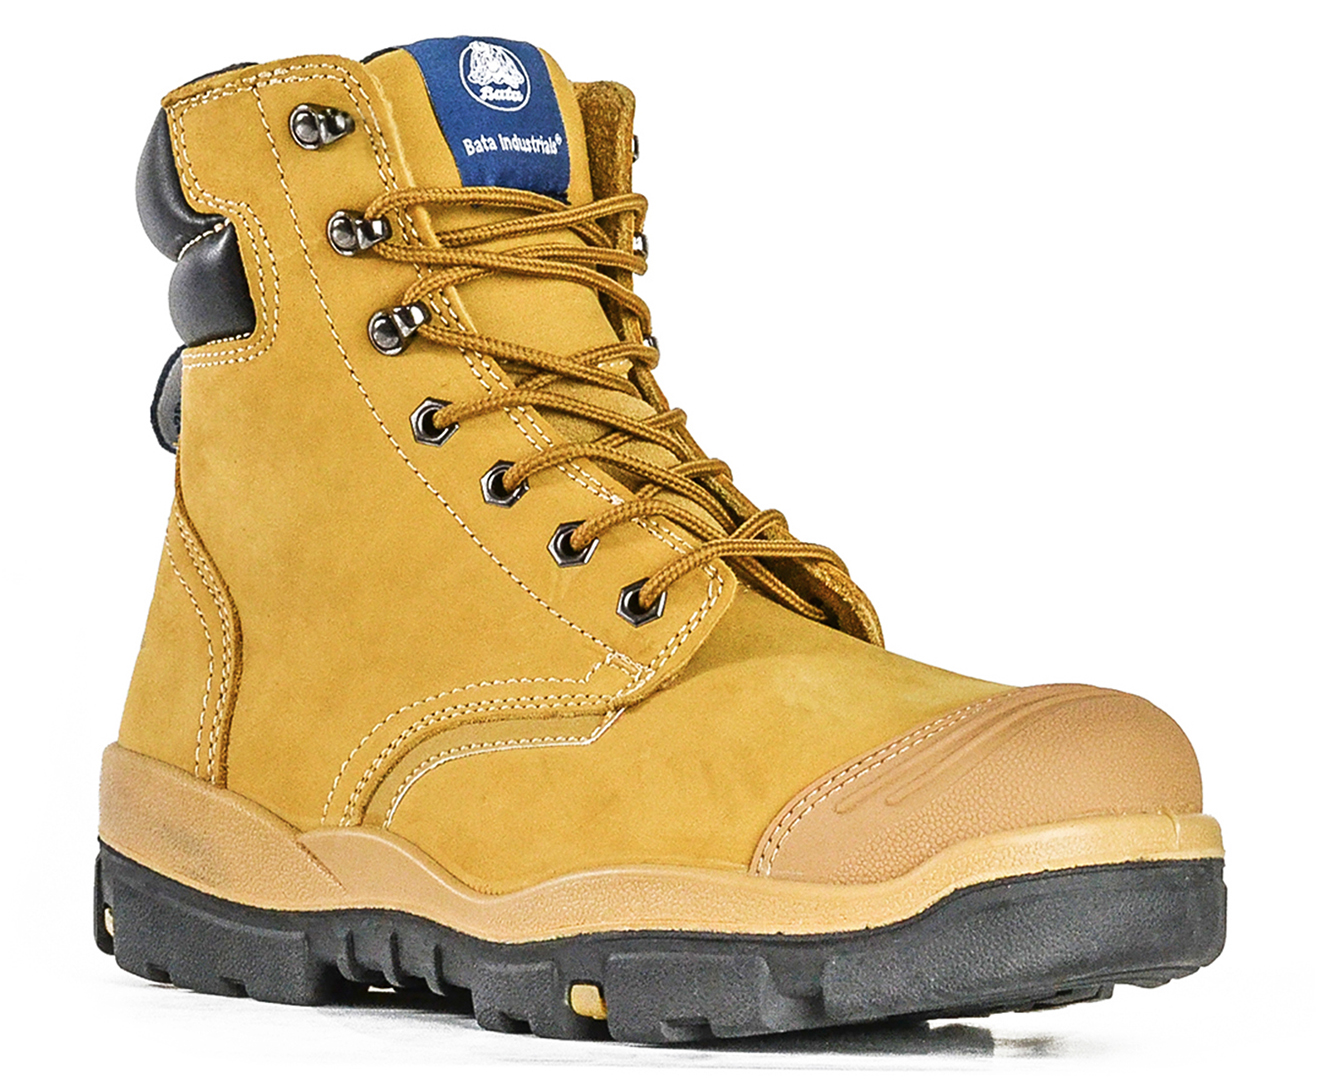 27dd34f7cc4 Bata Industrials Helix Ranger Lace Extra Wide Safety Boot - Wheat